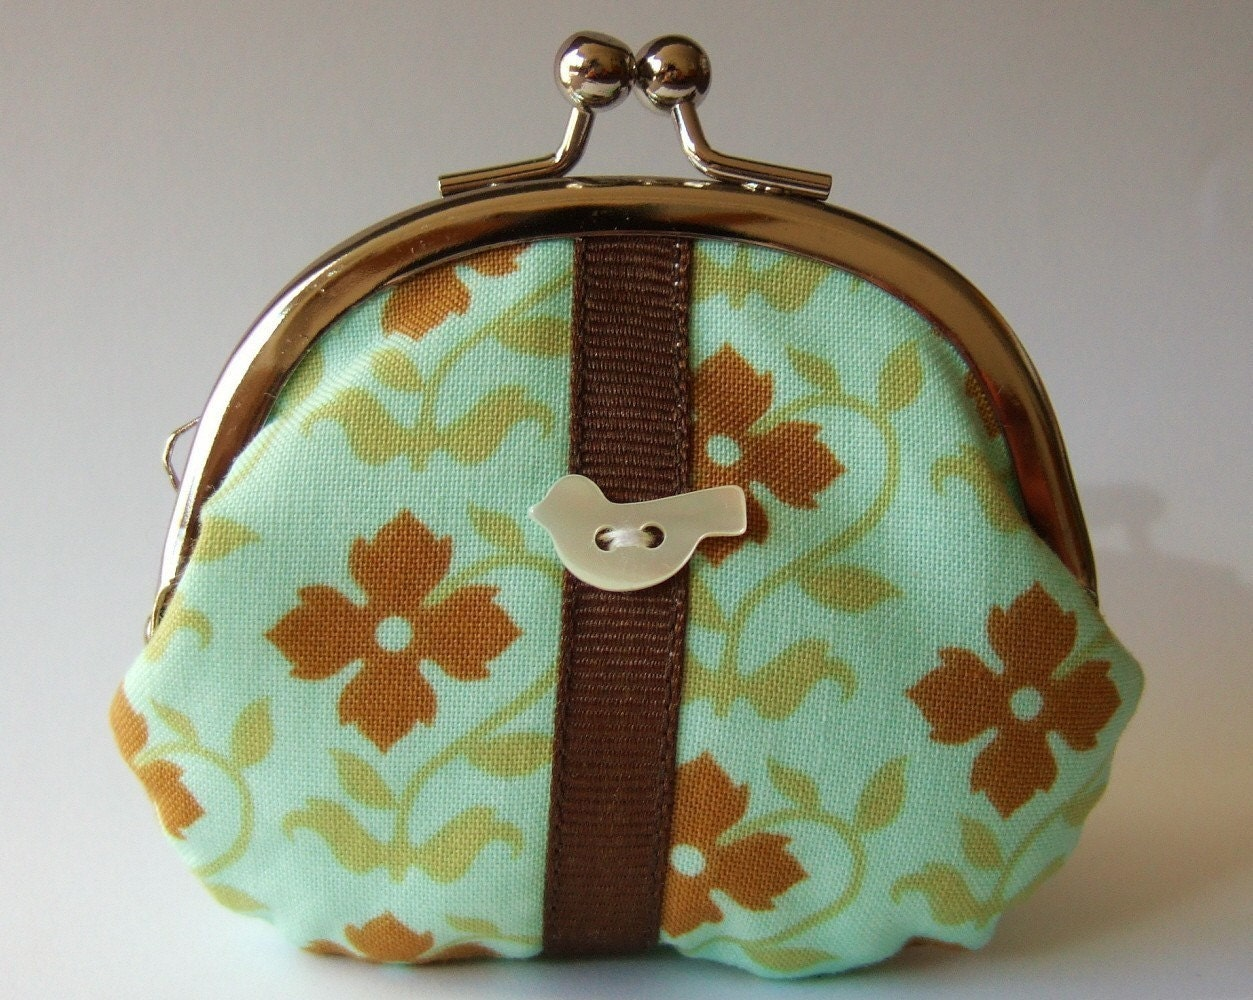 mini frame pouch - brown flowers on mint green with bird button